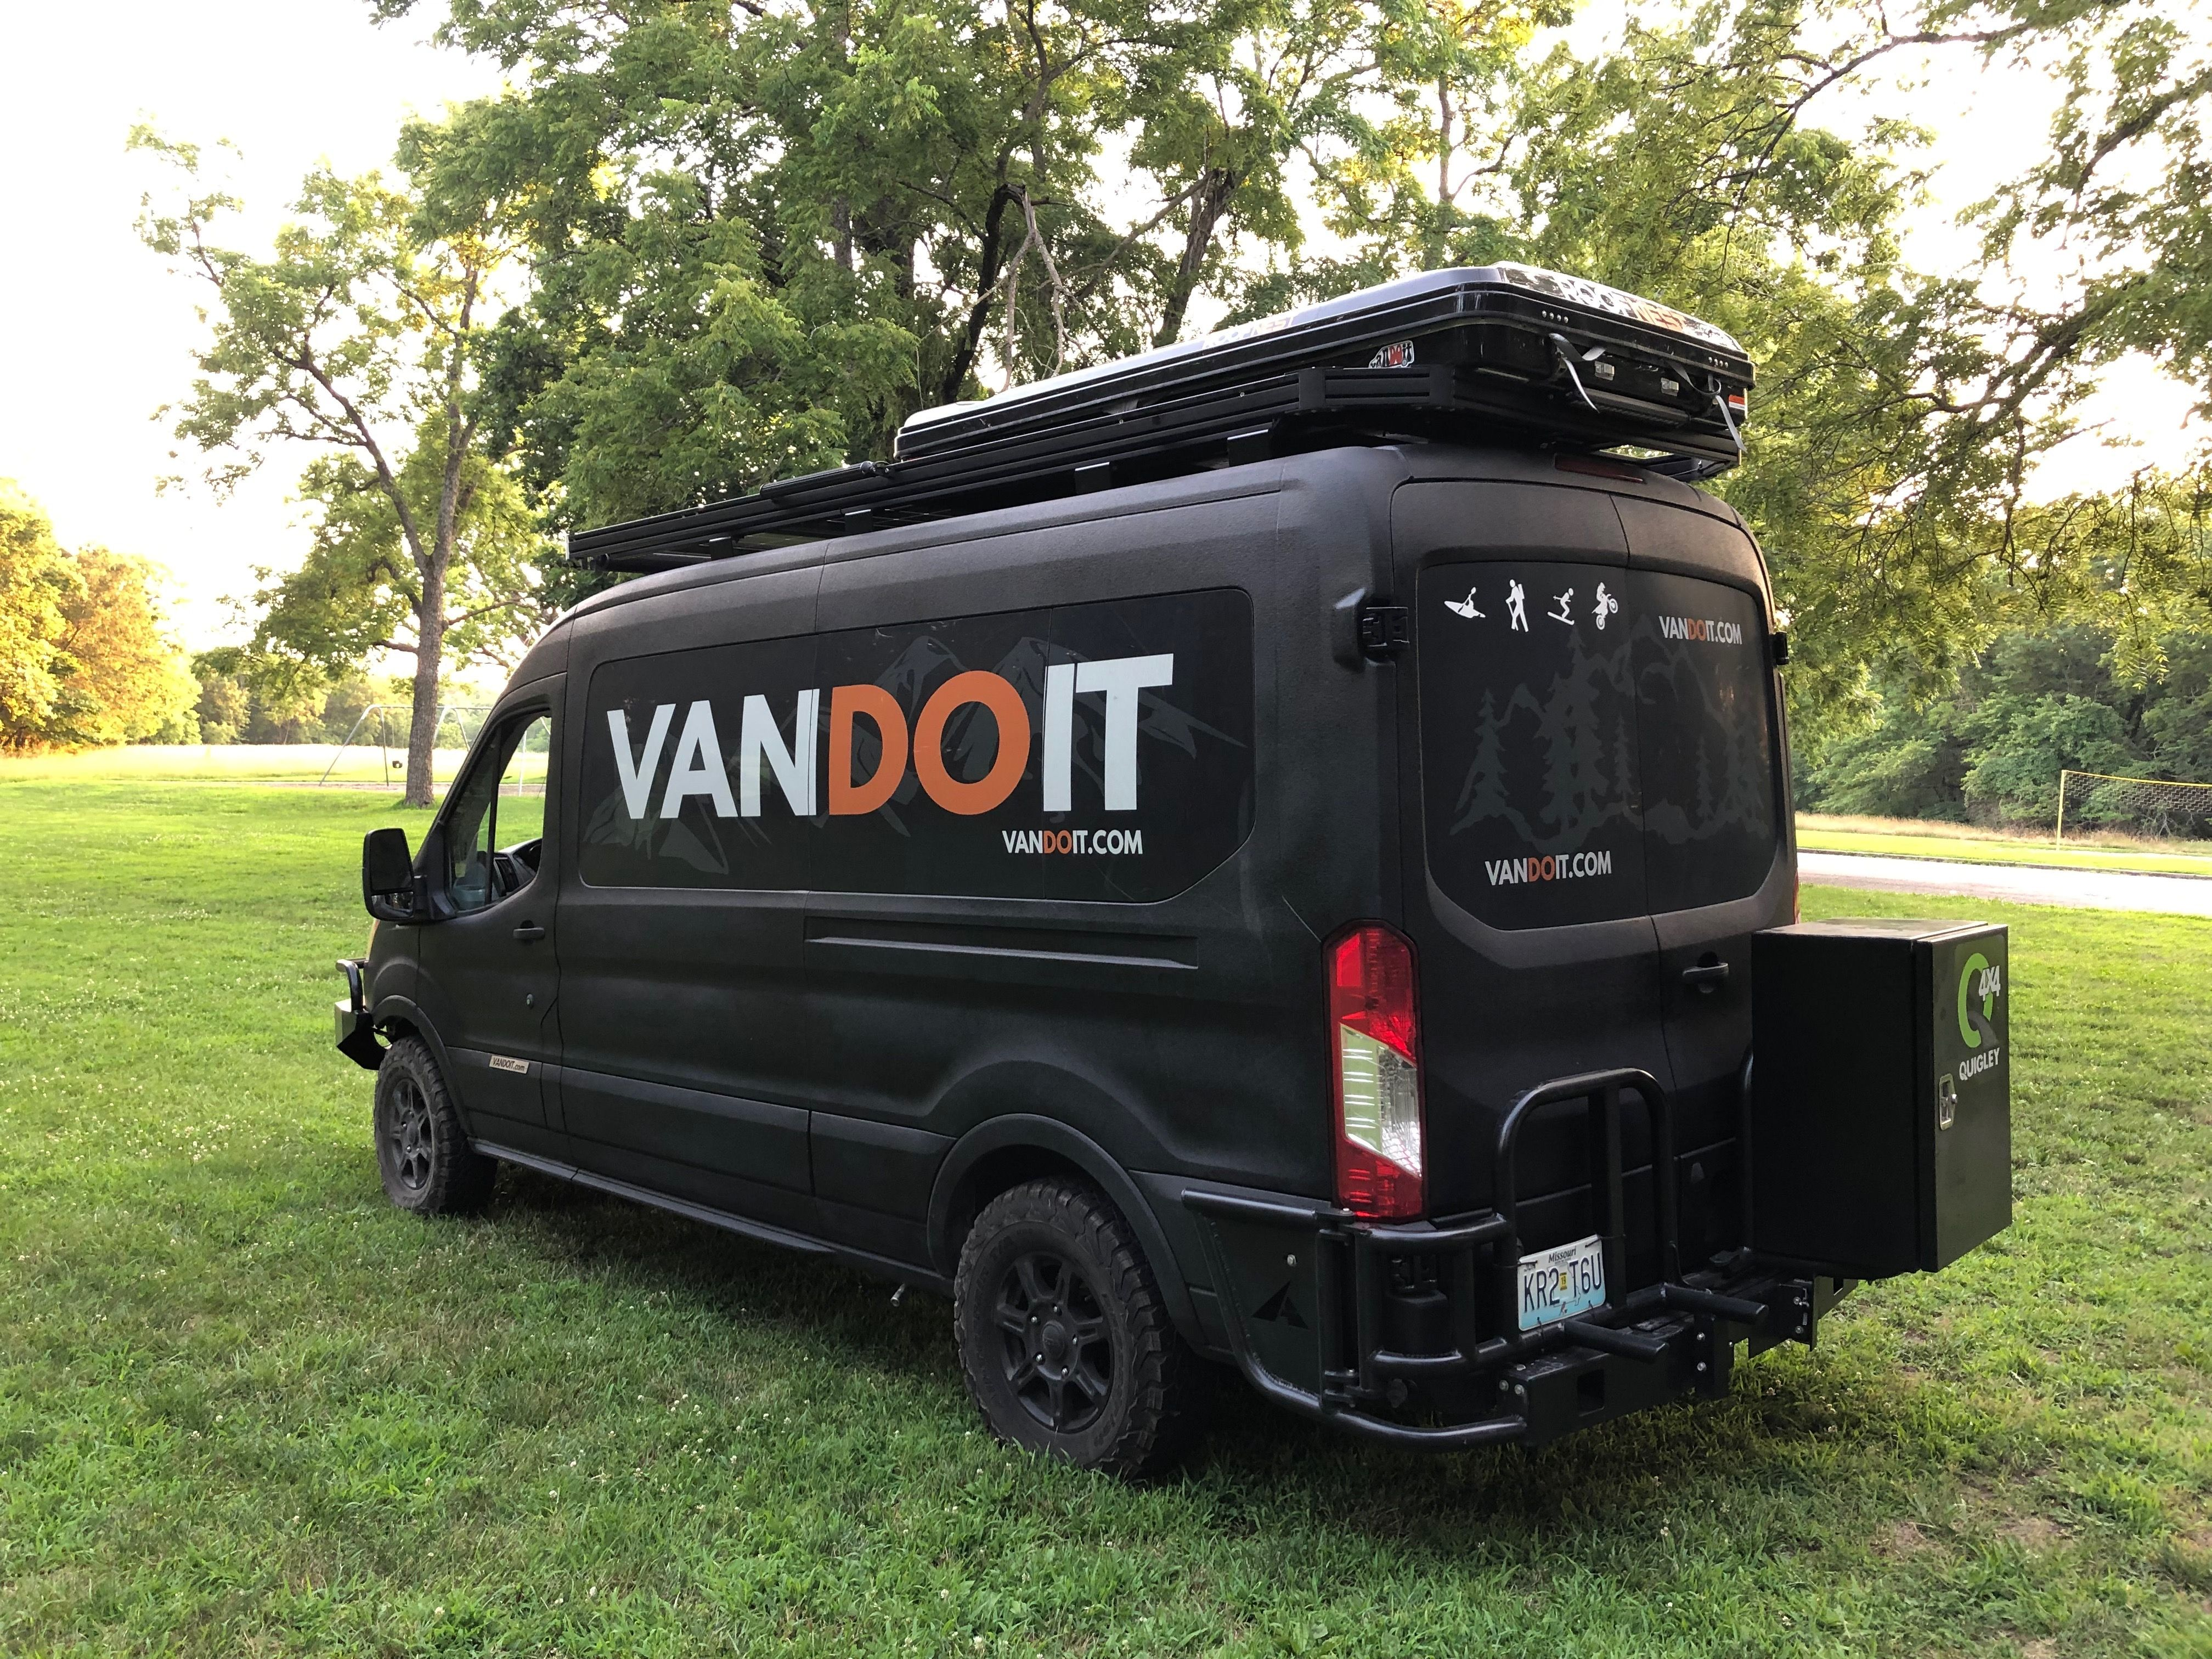 Vandoit Adventure Van With Quigley4x4 Vandoit Roofrack Aluminess Bumpers And Roofnext Rooftoptent Vanlife Ca Ford Transit Camper Ford Transit Vans